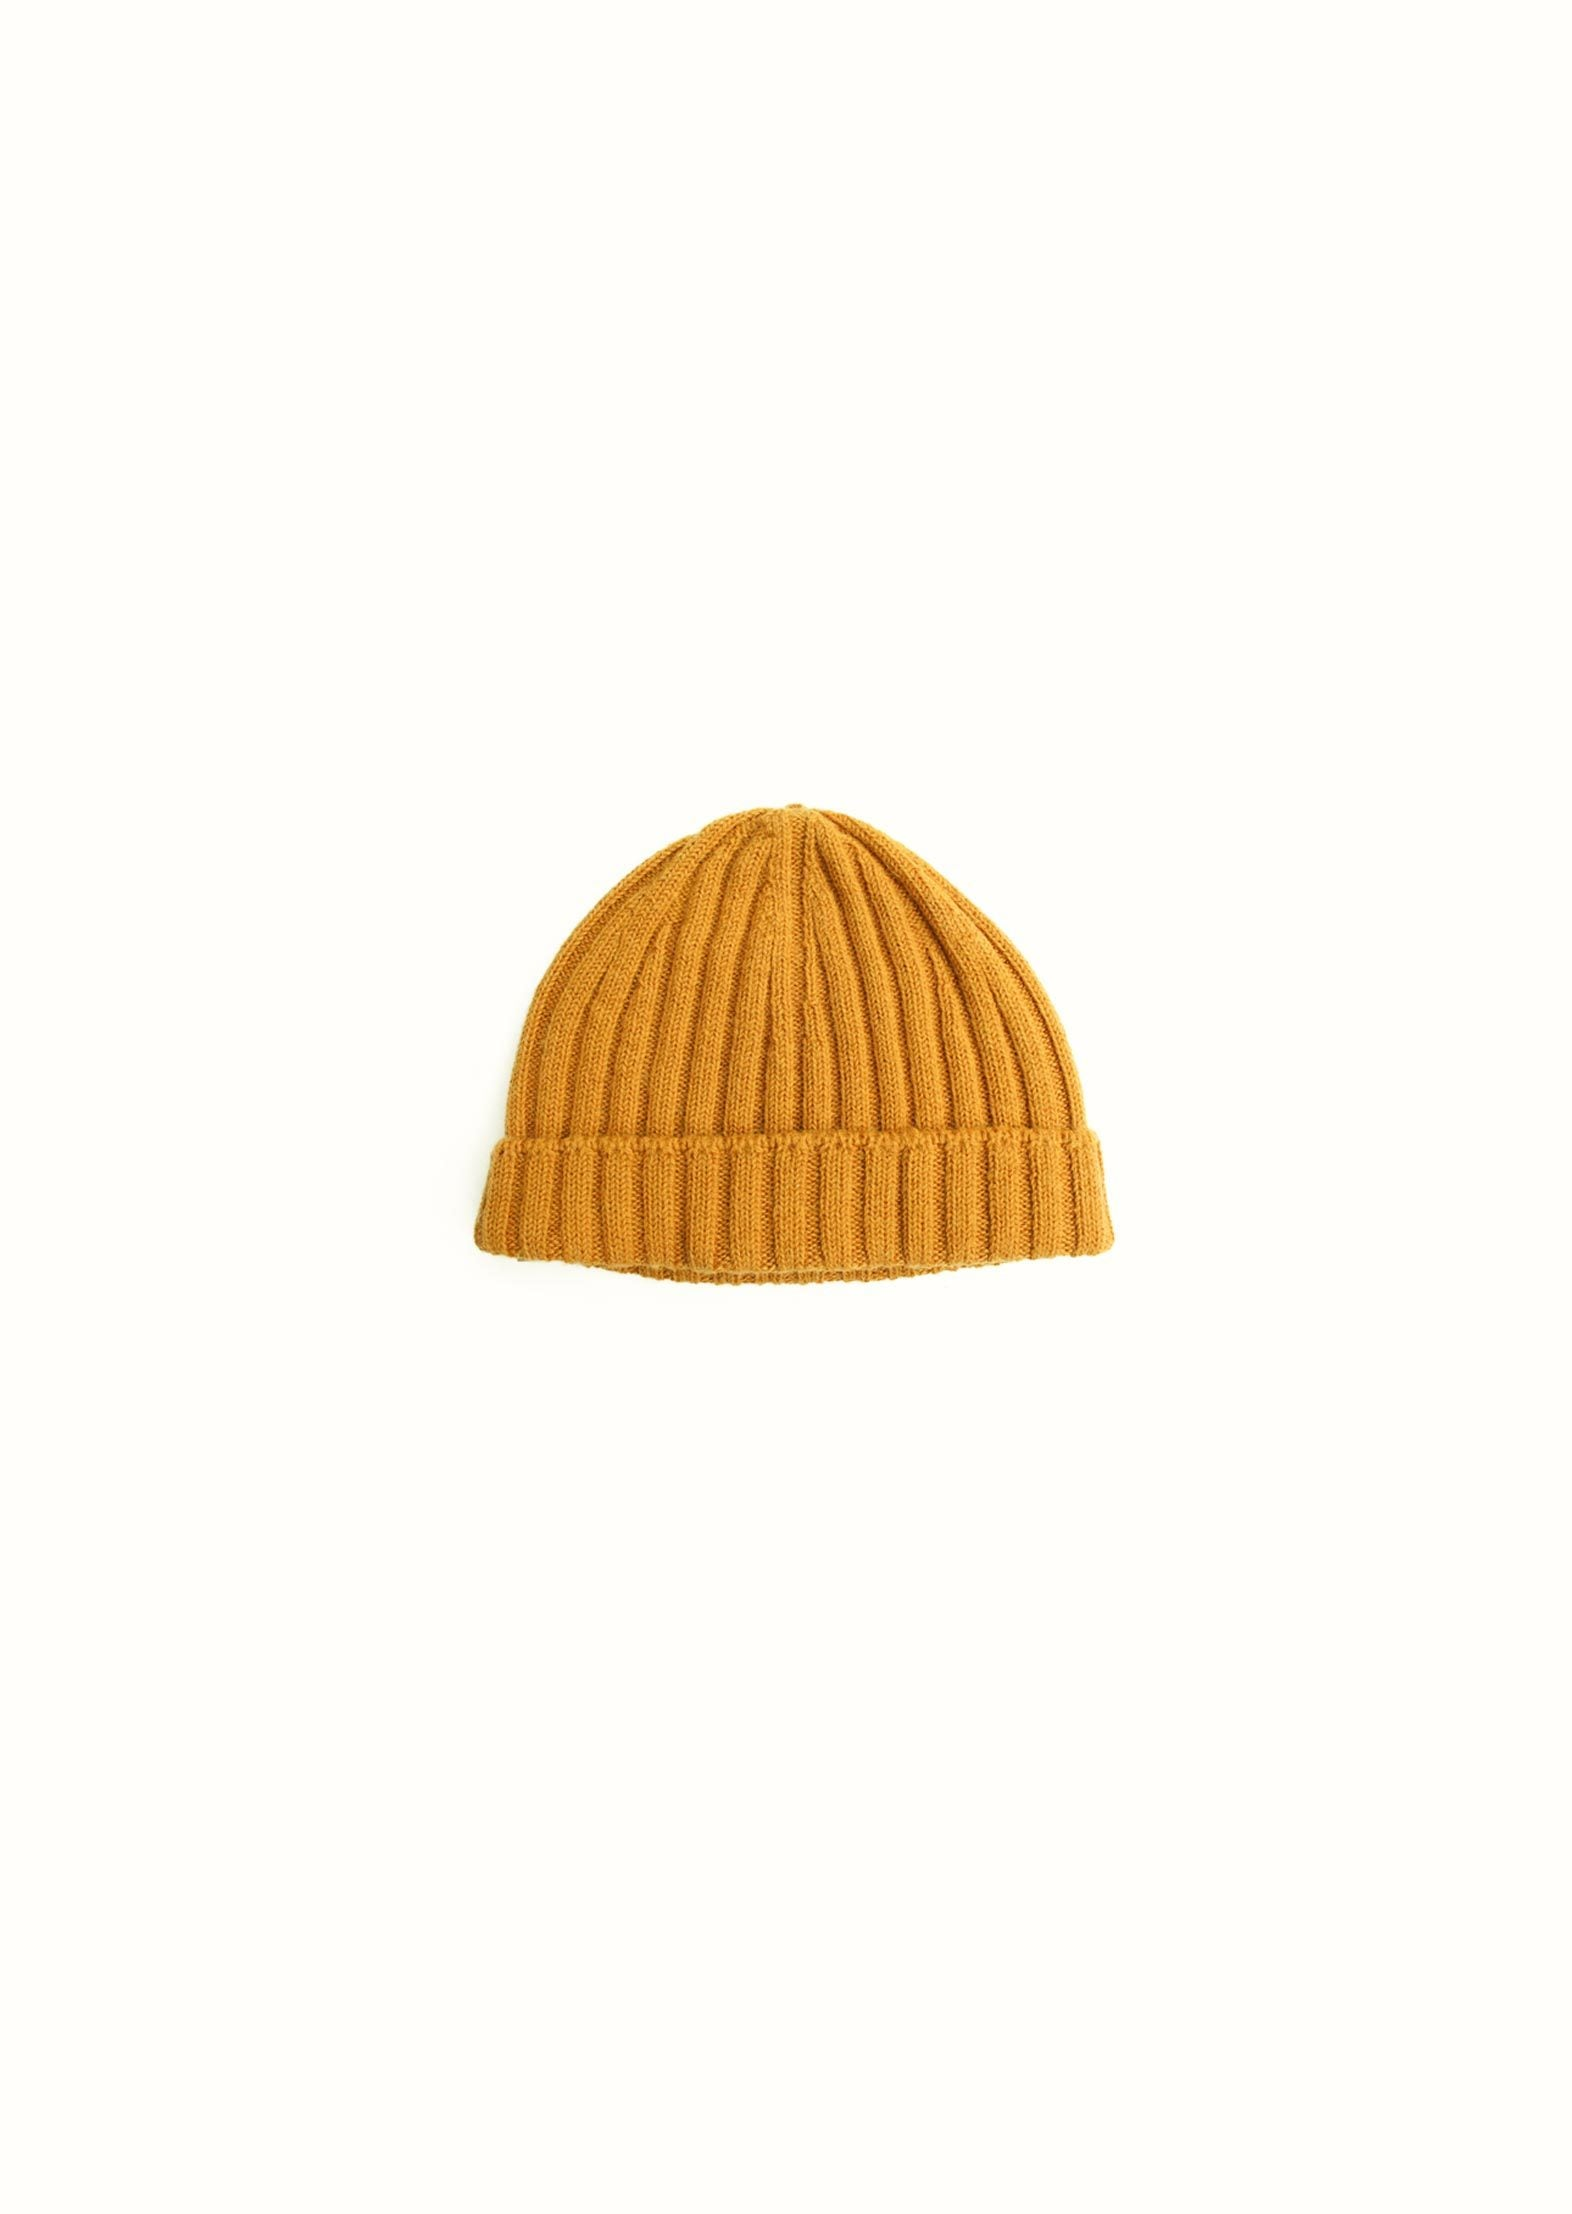 Ribbed beanie - Wool and alpaca blend - Honey - De Bonne Facture